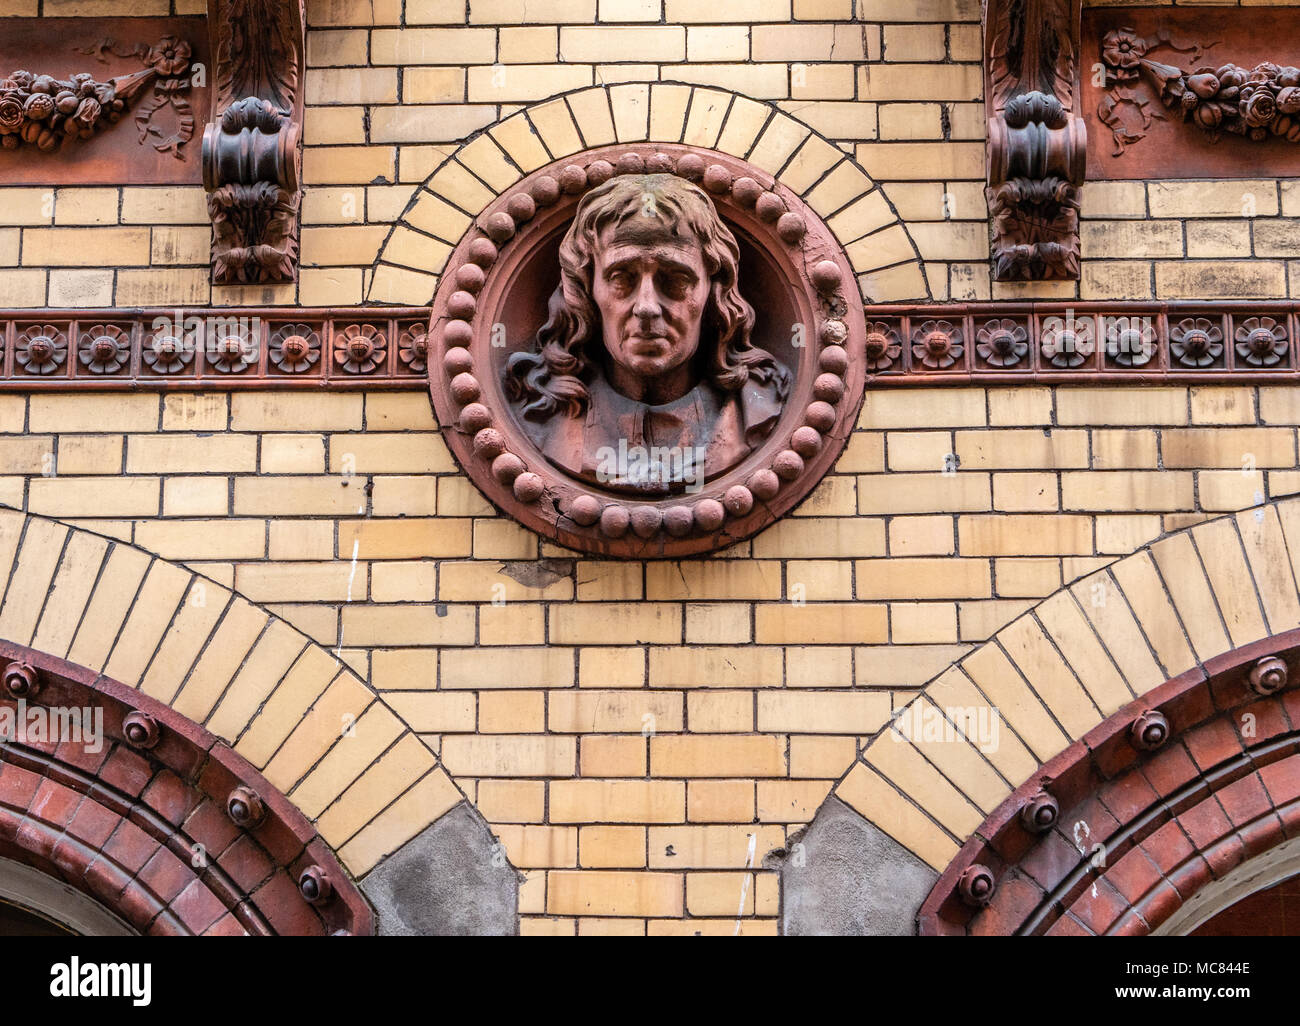 Roundel of a man resembling Edward Colston the formerly revered but lately reviled philanthropist and slave trader on city centre building Bristol UK - Stock Image